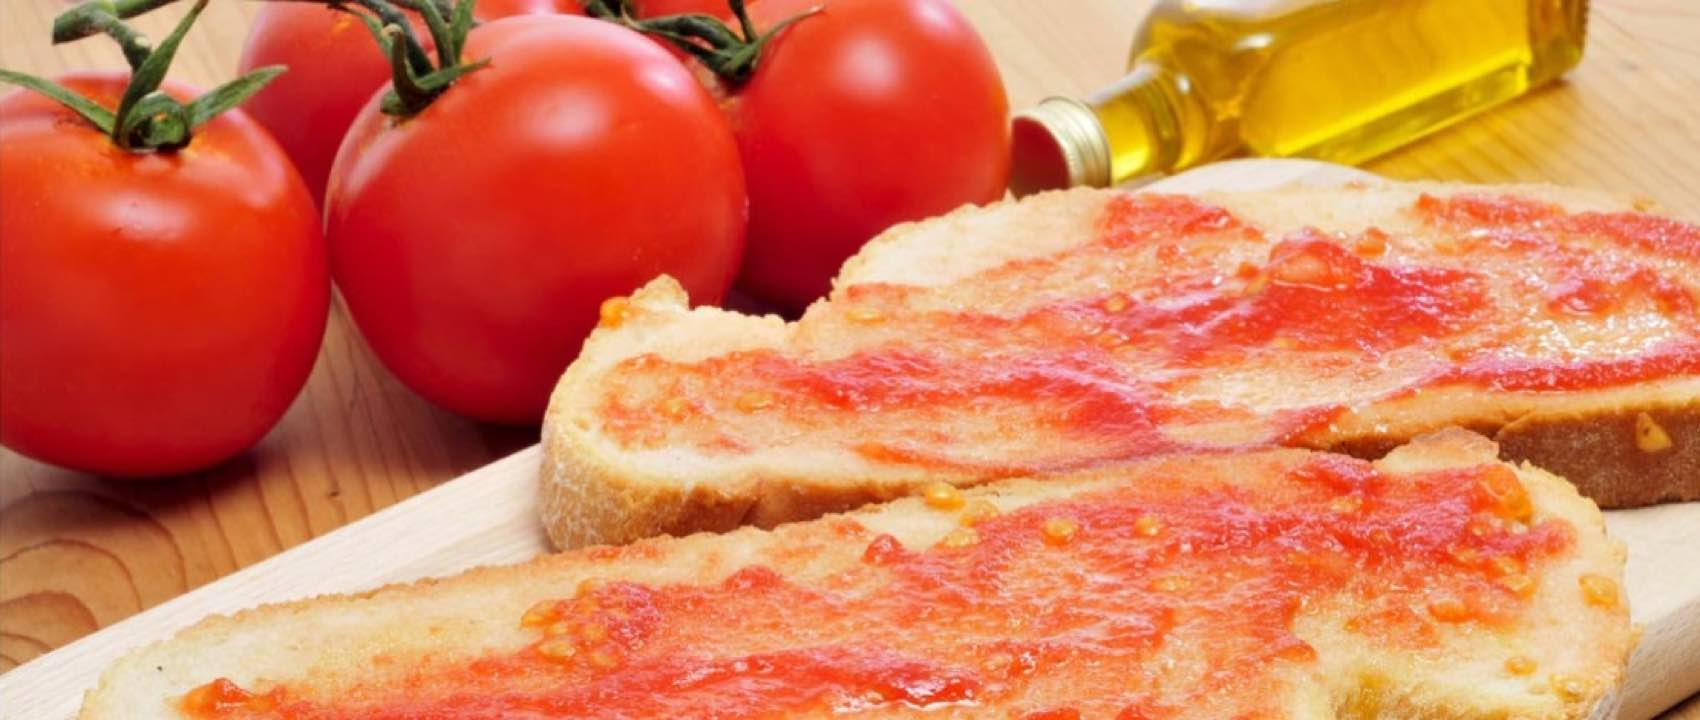 Pan Tumaca is typical in Catalonia